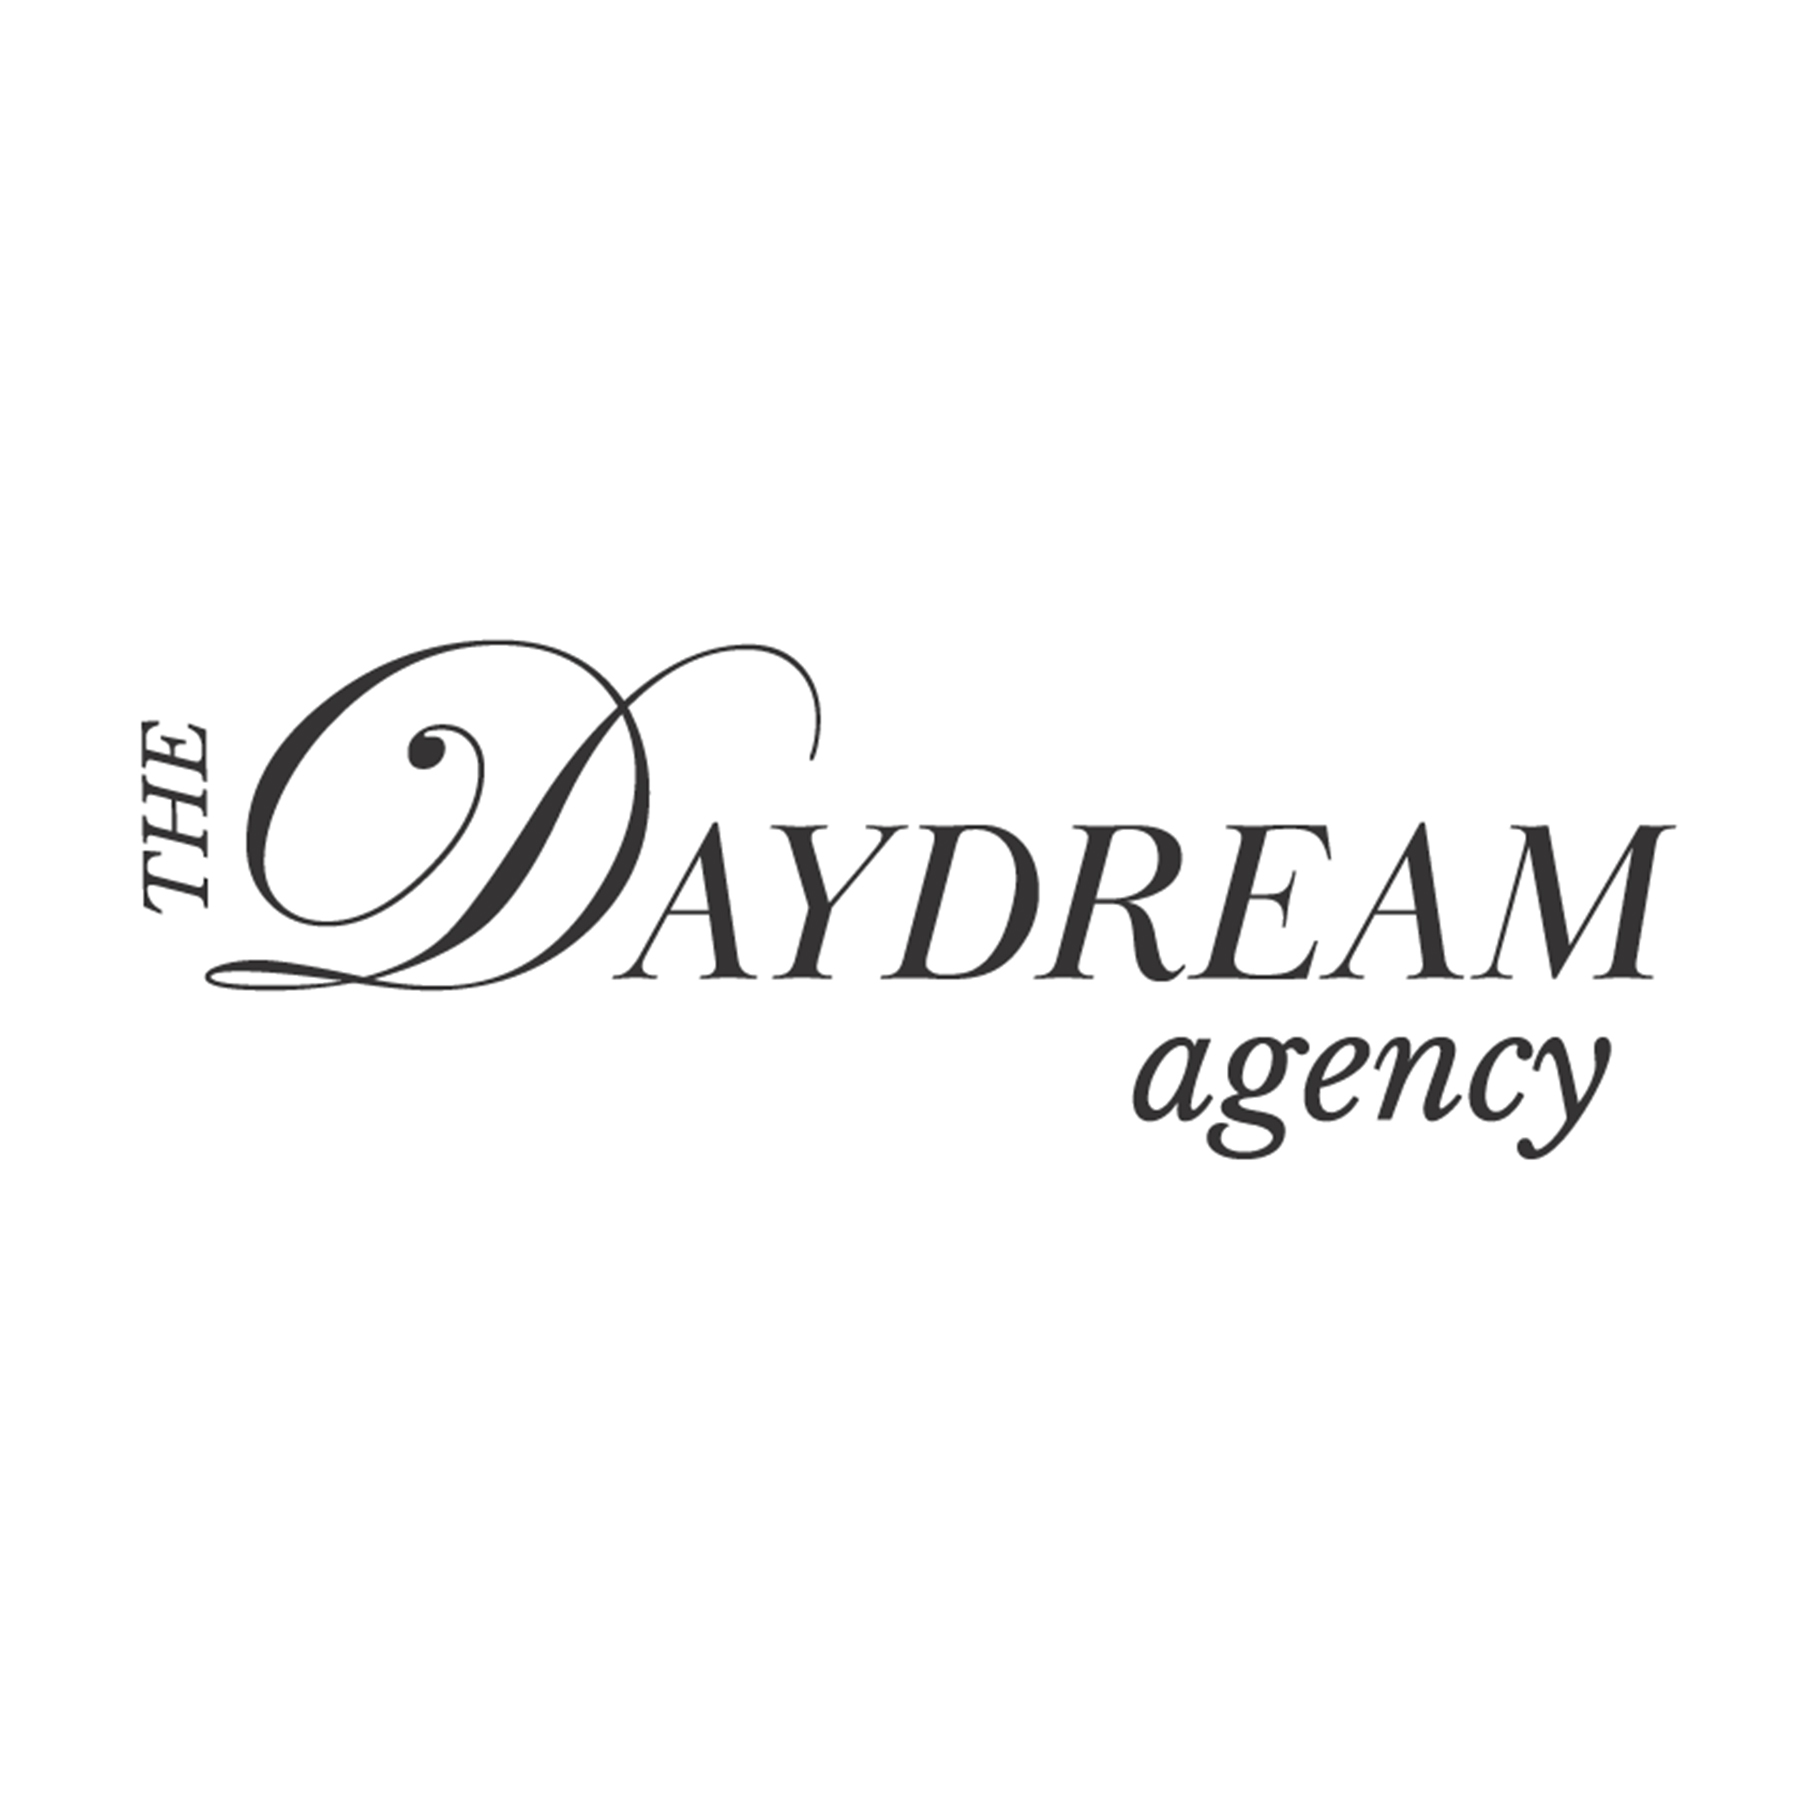 The Daydream Agency McMinnville Oregon